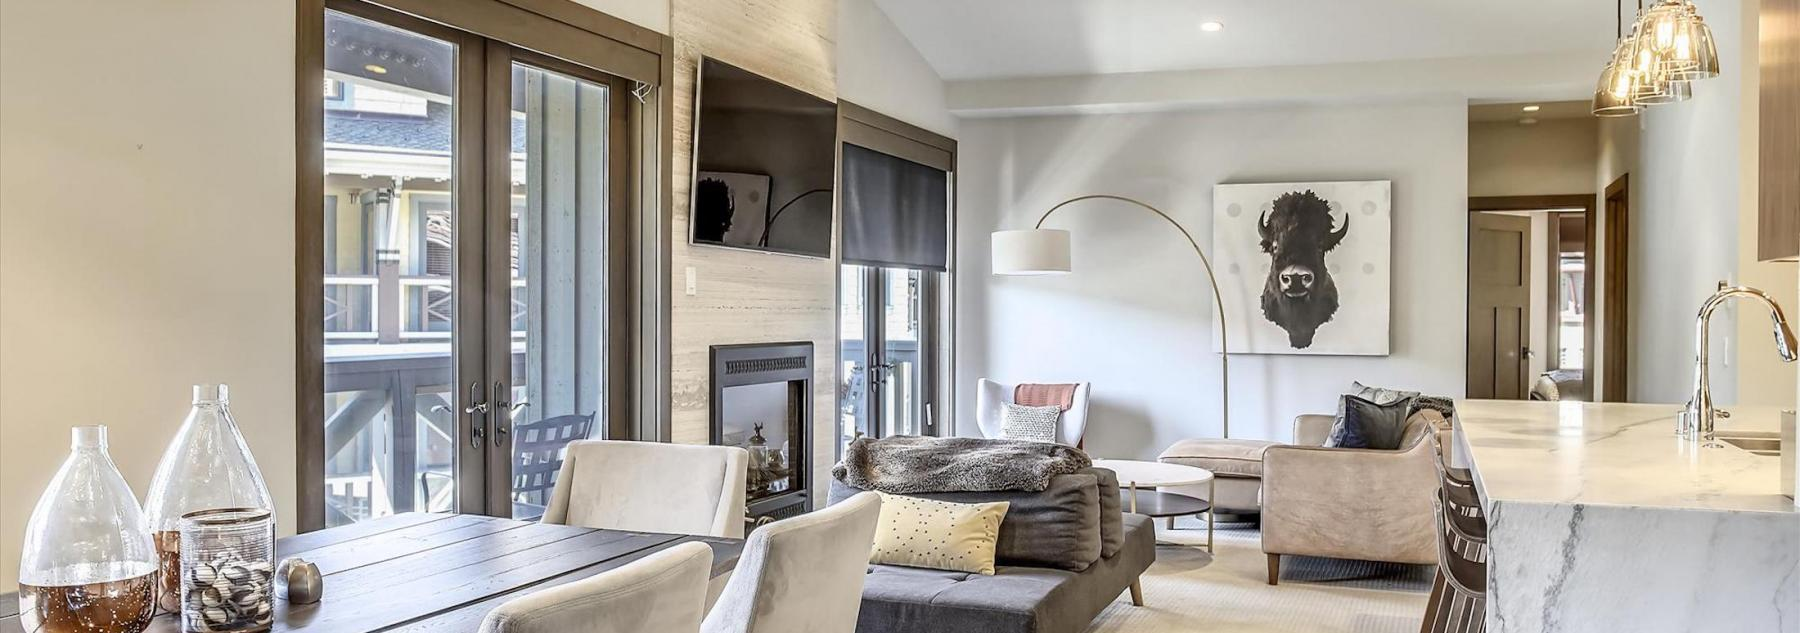 Luxury Squaw Valley Vacation Rental